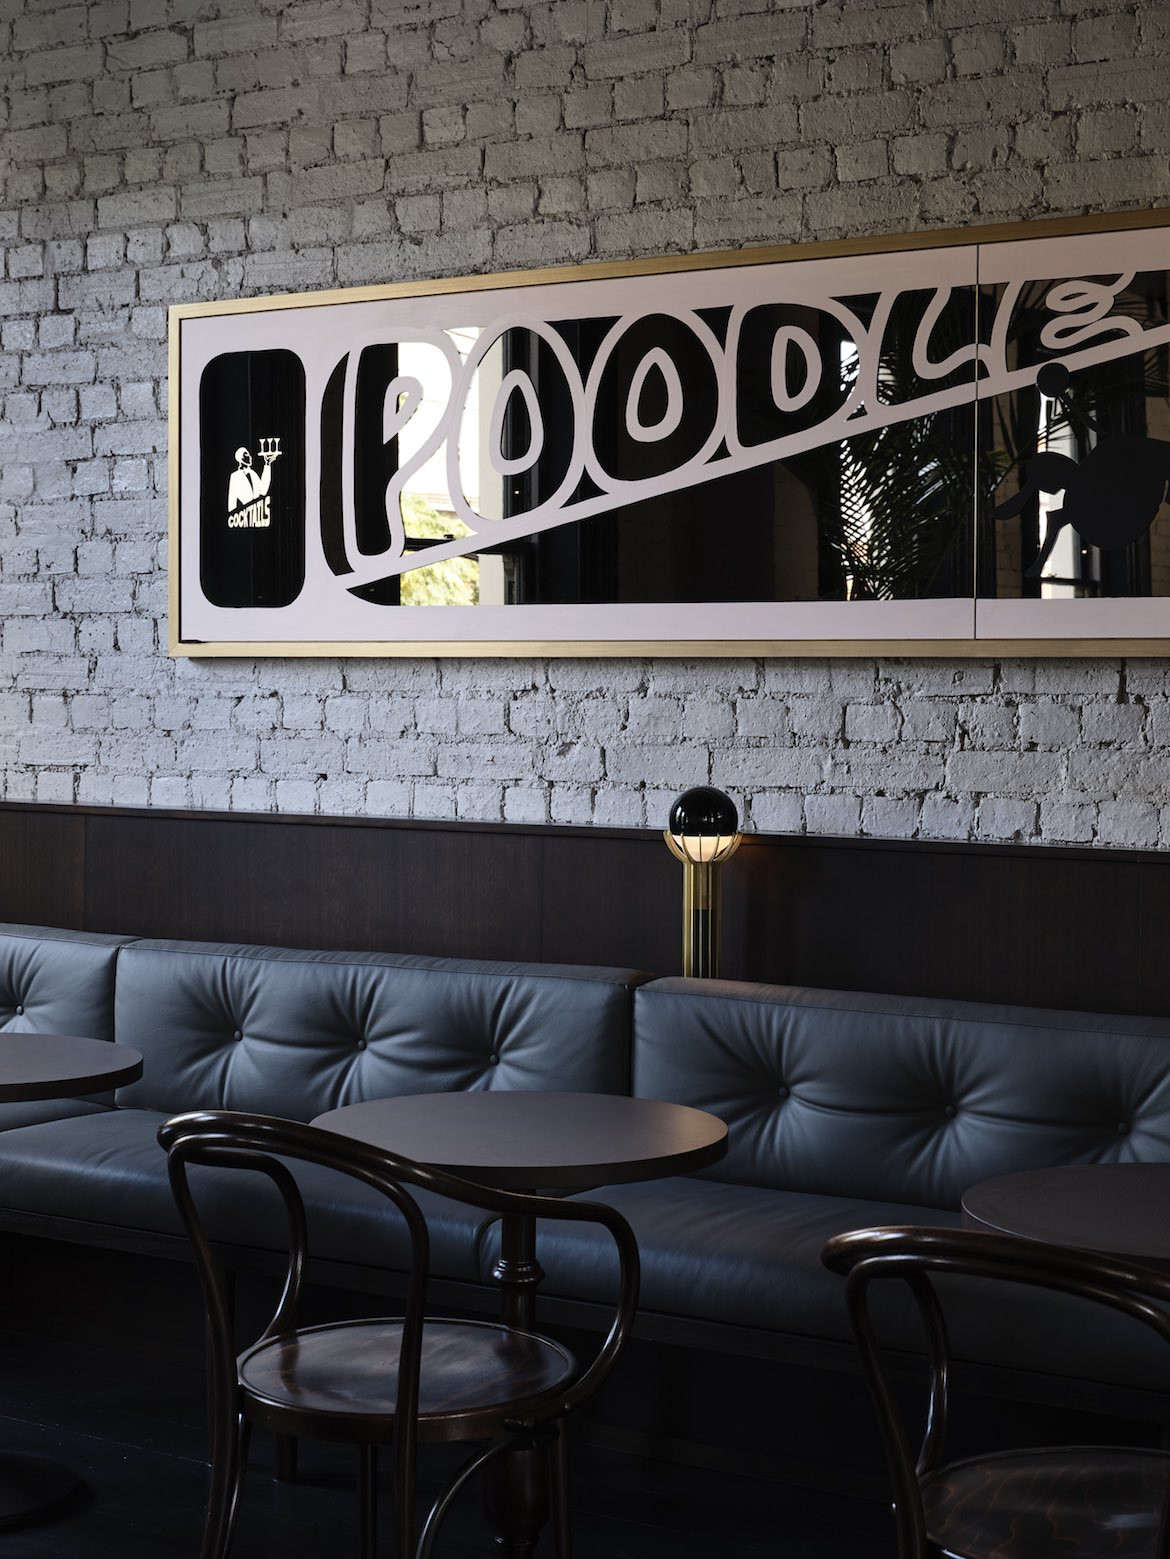 A mirrored sign reads 'poodle' above a row of couches in Das Studio's Poodle projec.